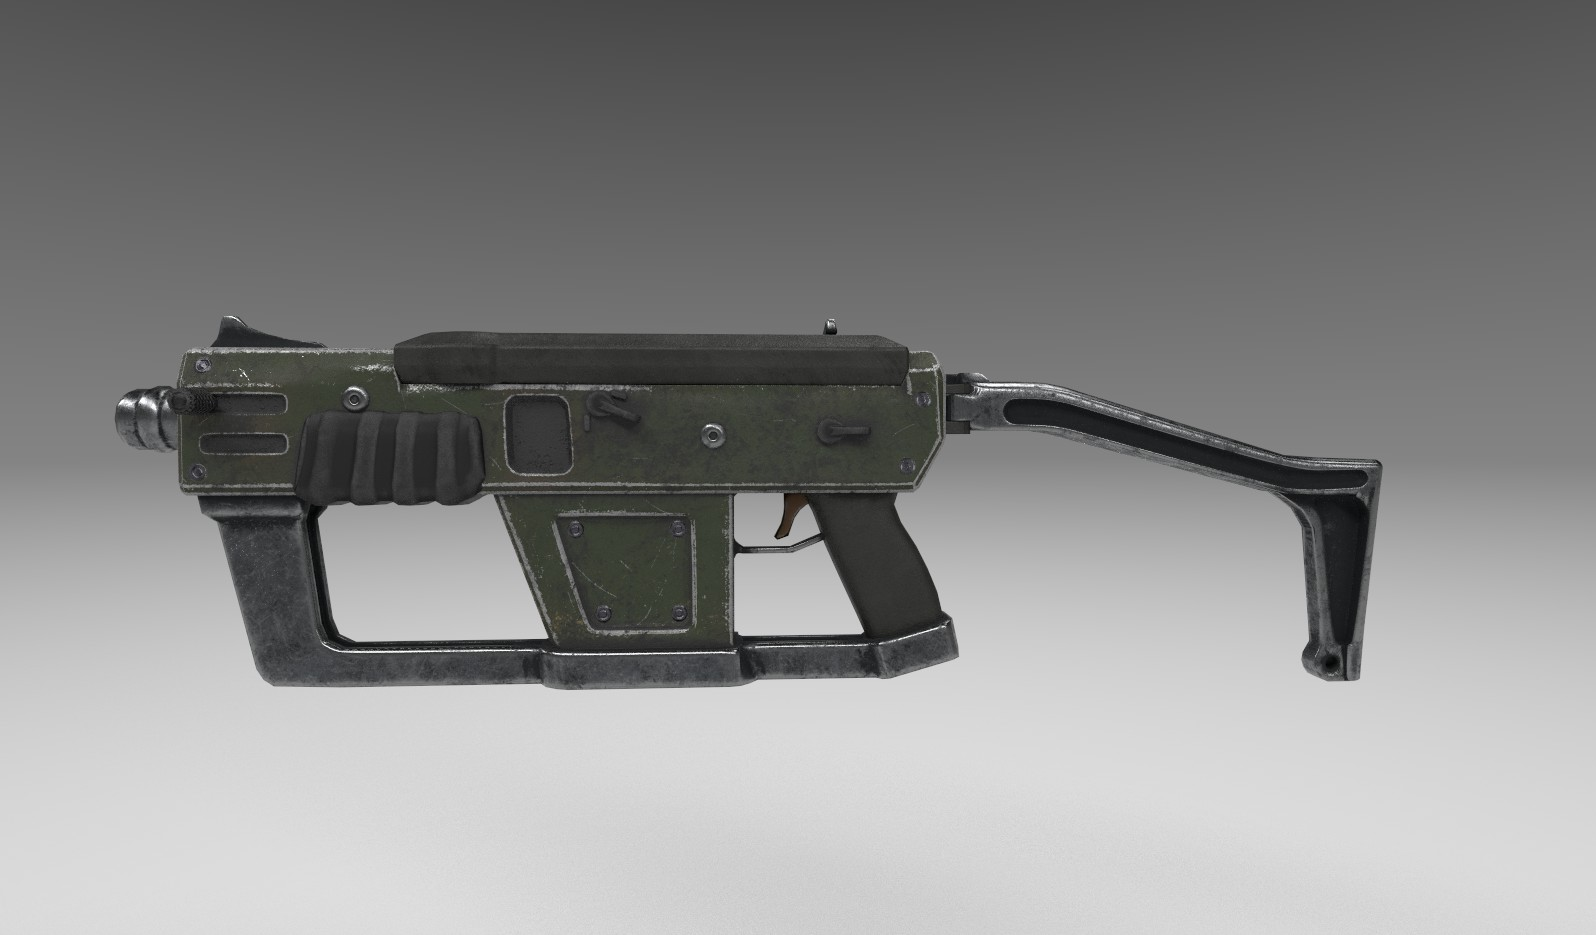 12_7 SMG Textured